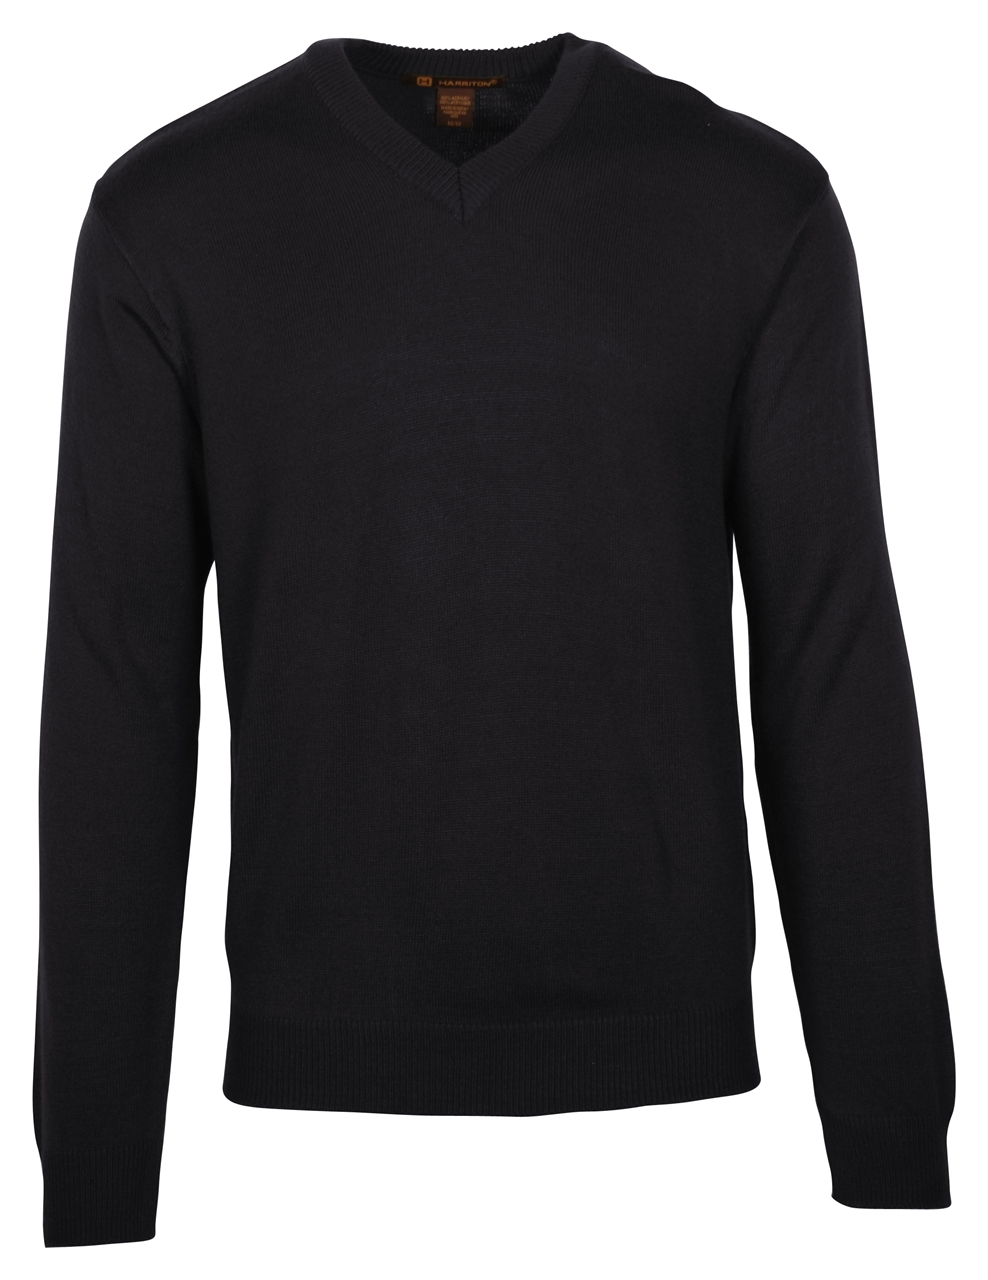 LONG SLEEVE PULLOVER XS-6XL ANTI-PILL V-NECK SWEATER MEN/'S EASY CARE